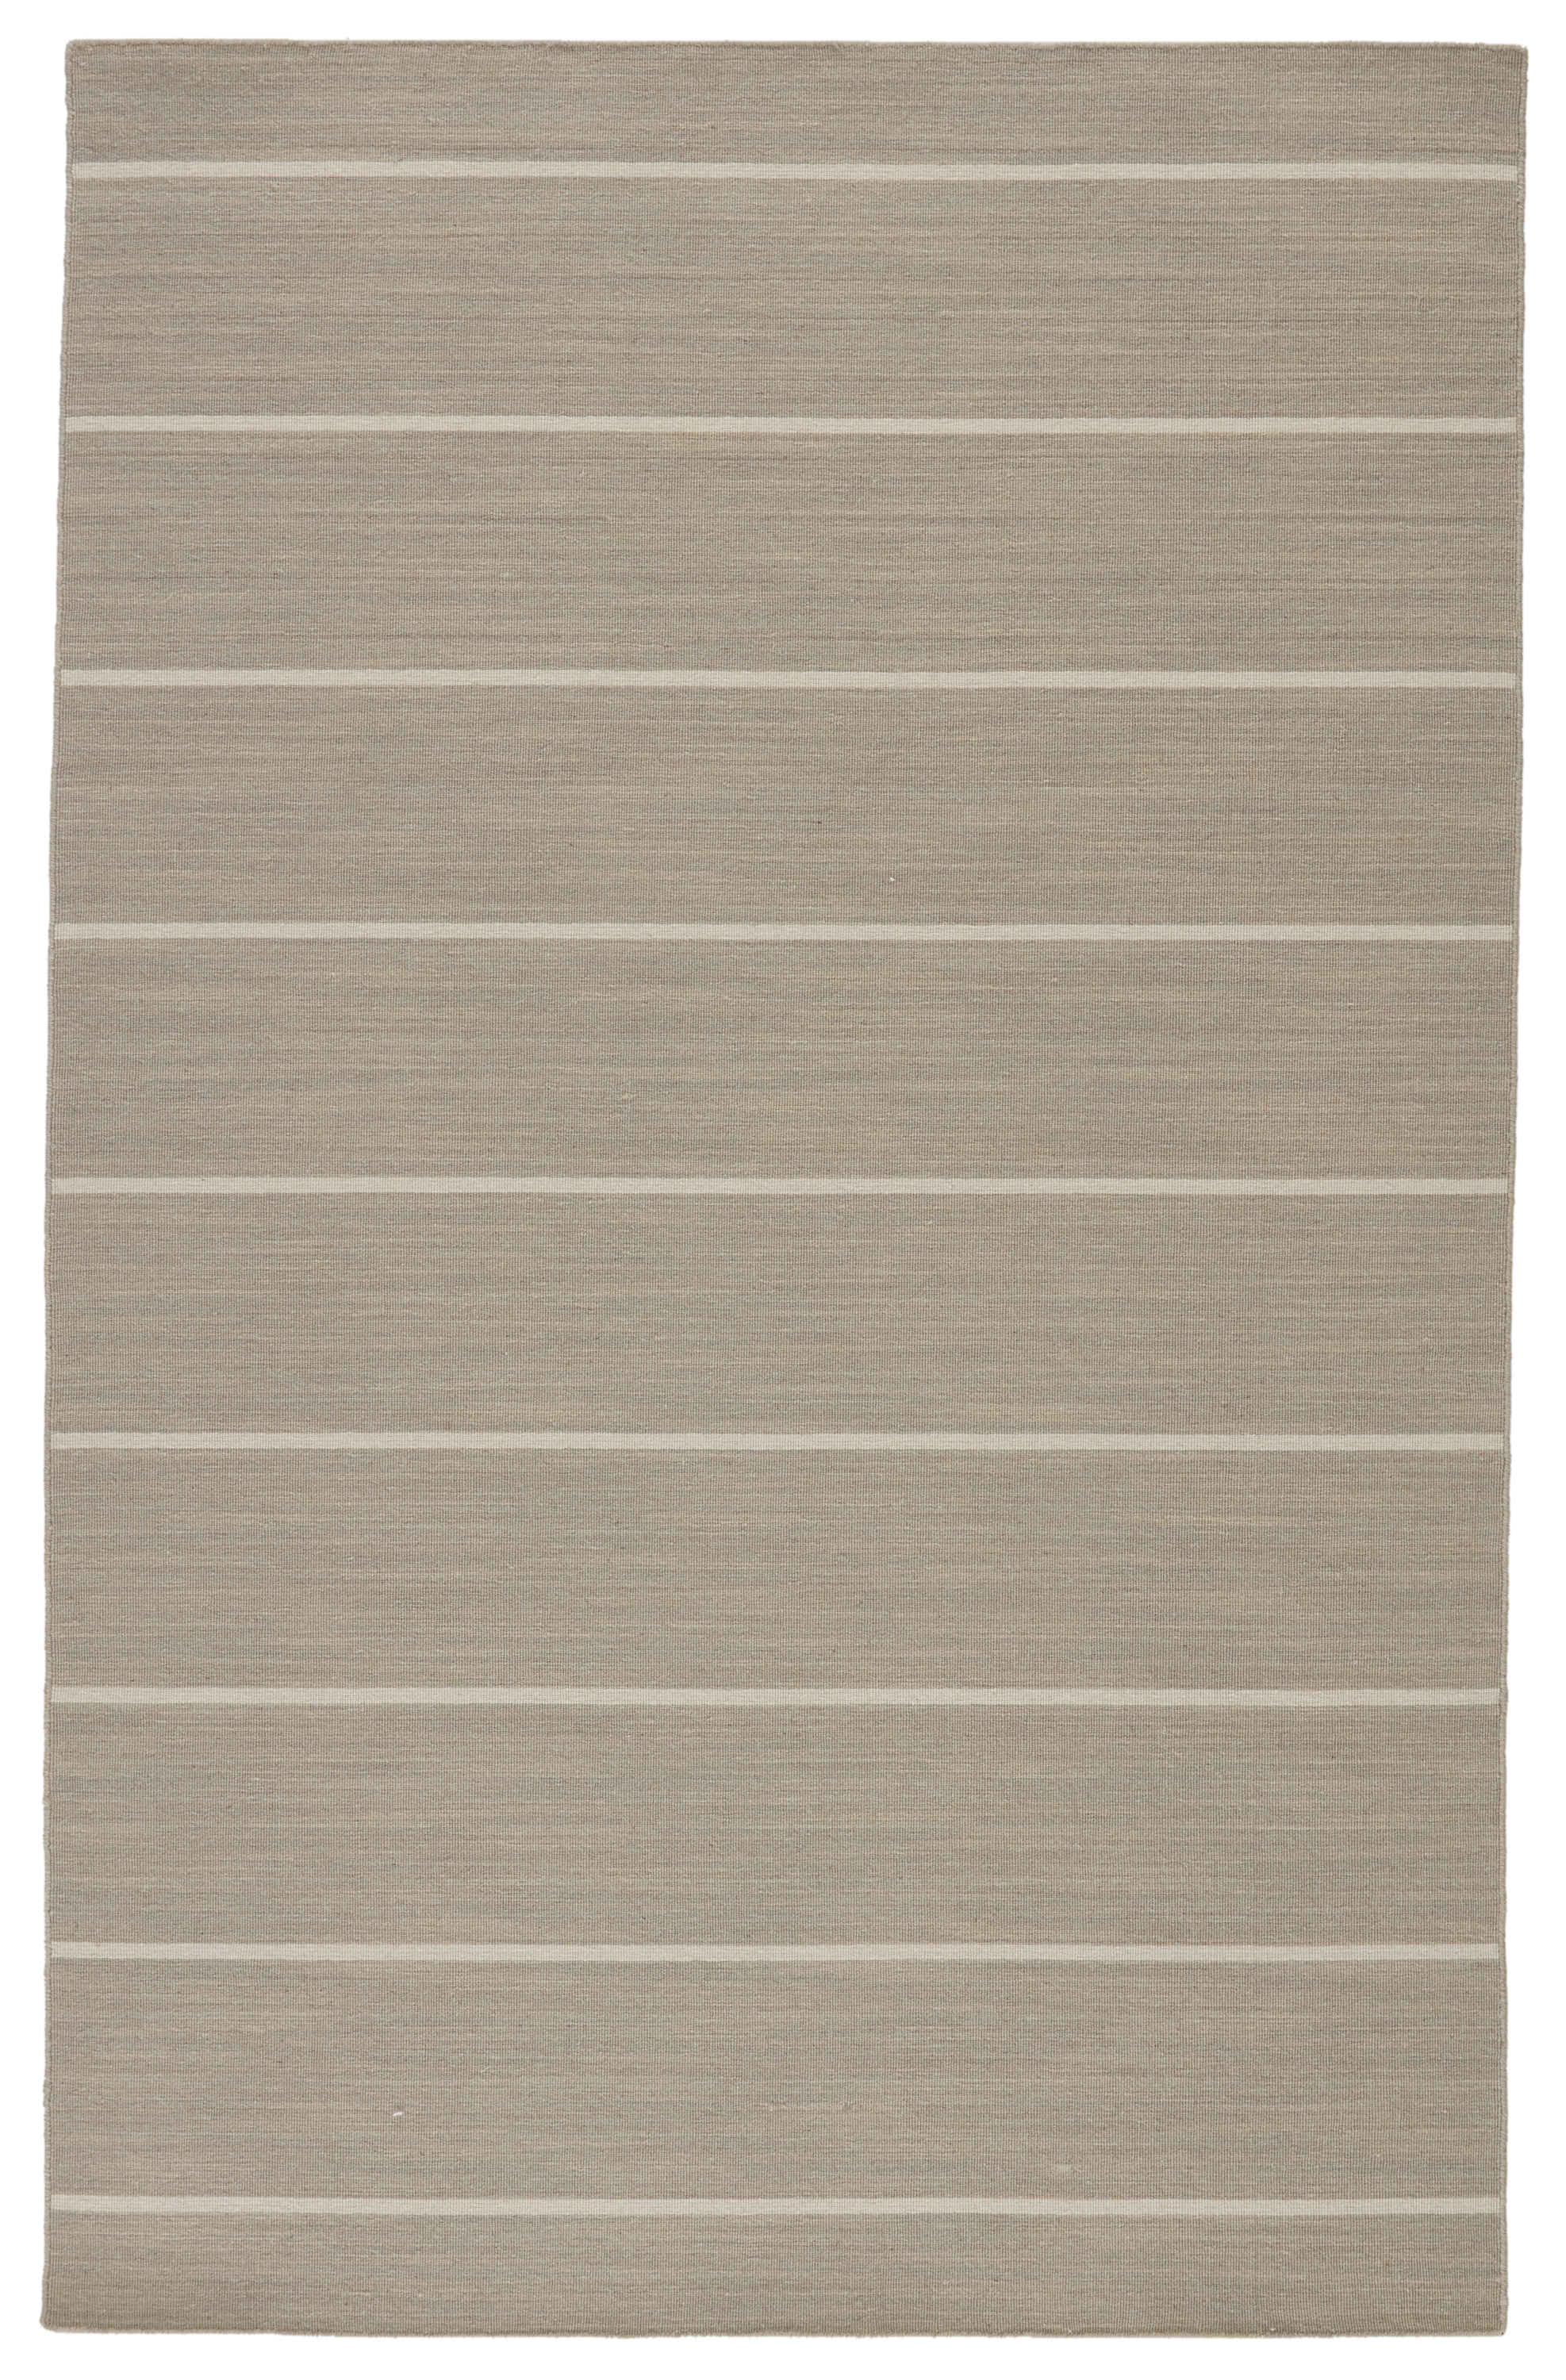 Jaipur Coastal Shores COH17 Gray